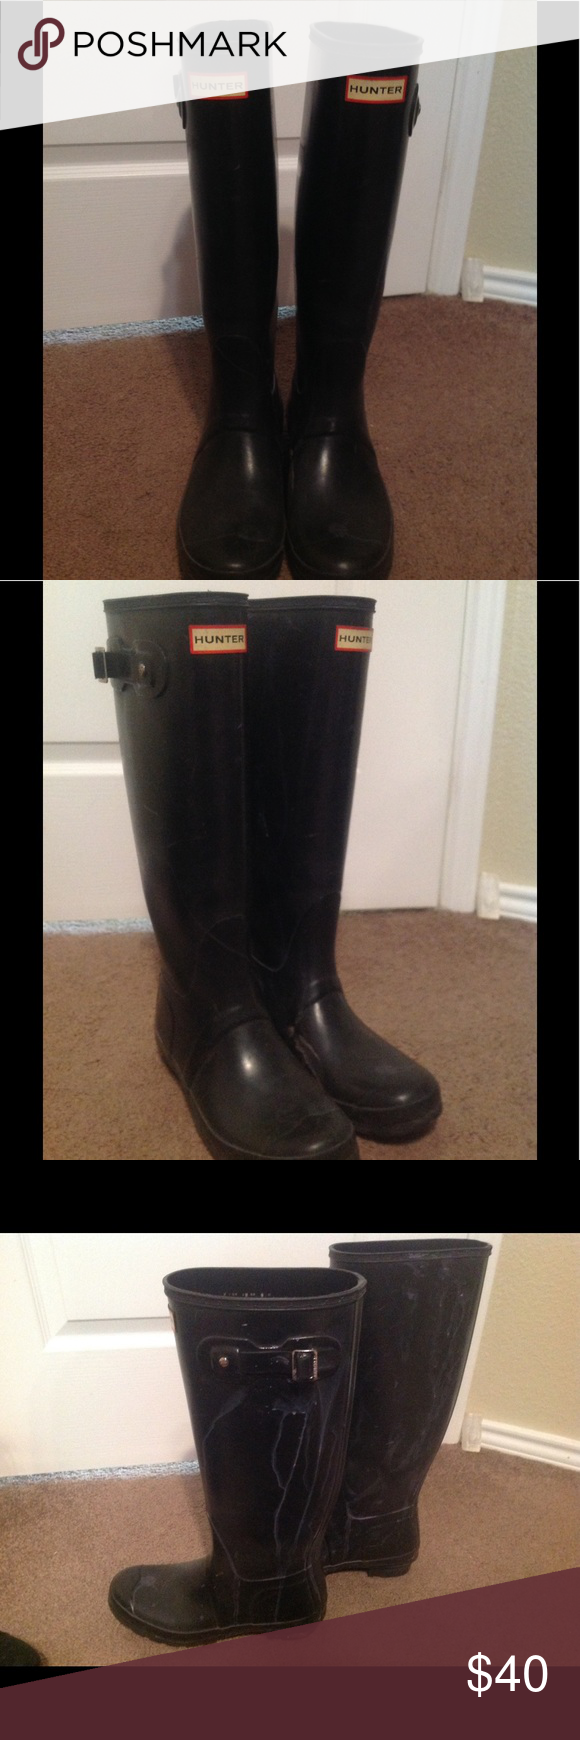 HUNTER RAIN BOOTS BLACK SZ 8 Good condition boots. Didn't wear much, but I am a painter and got some paint stains on them, may be able to get out, but selling for good price :) Hunter Shoes Winter & Rain Boots